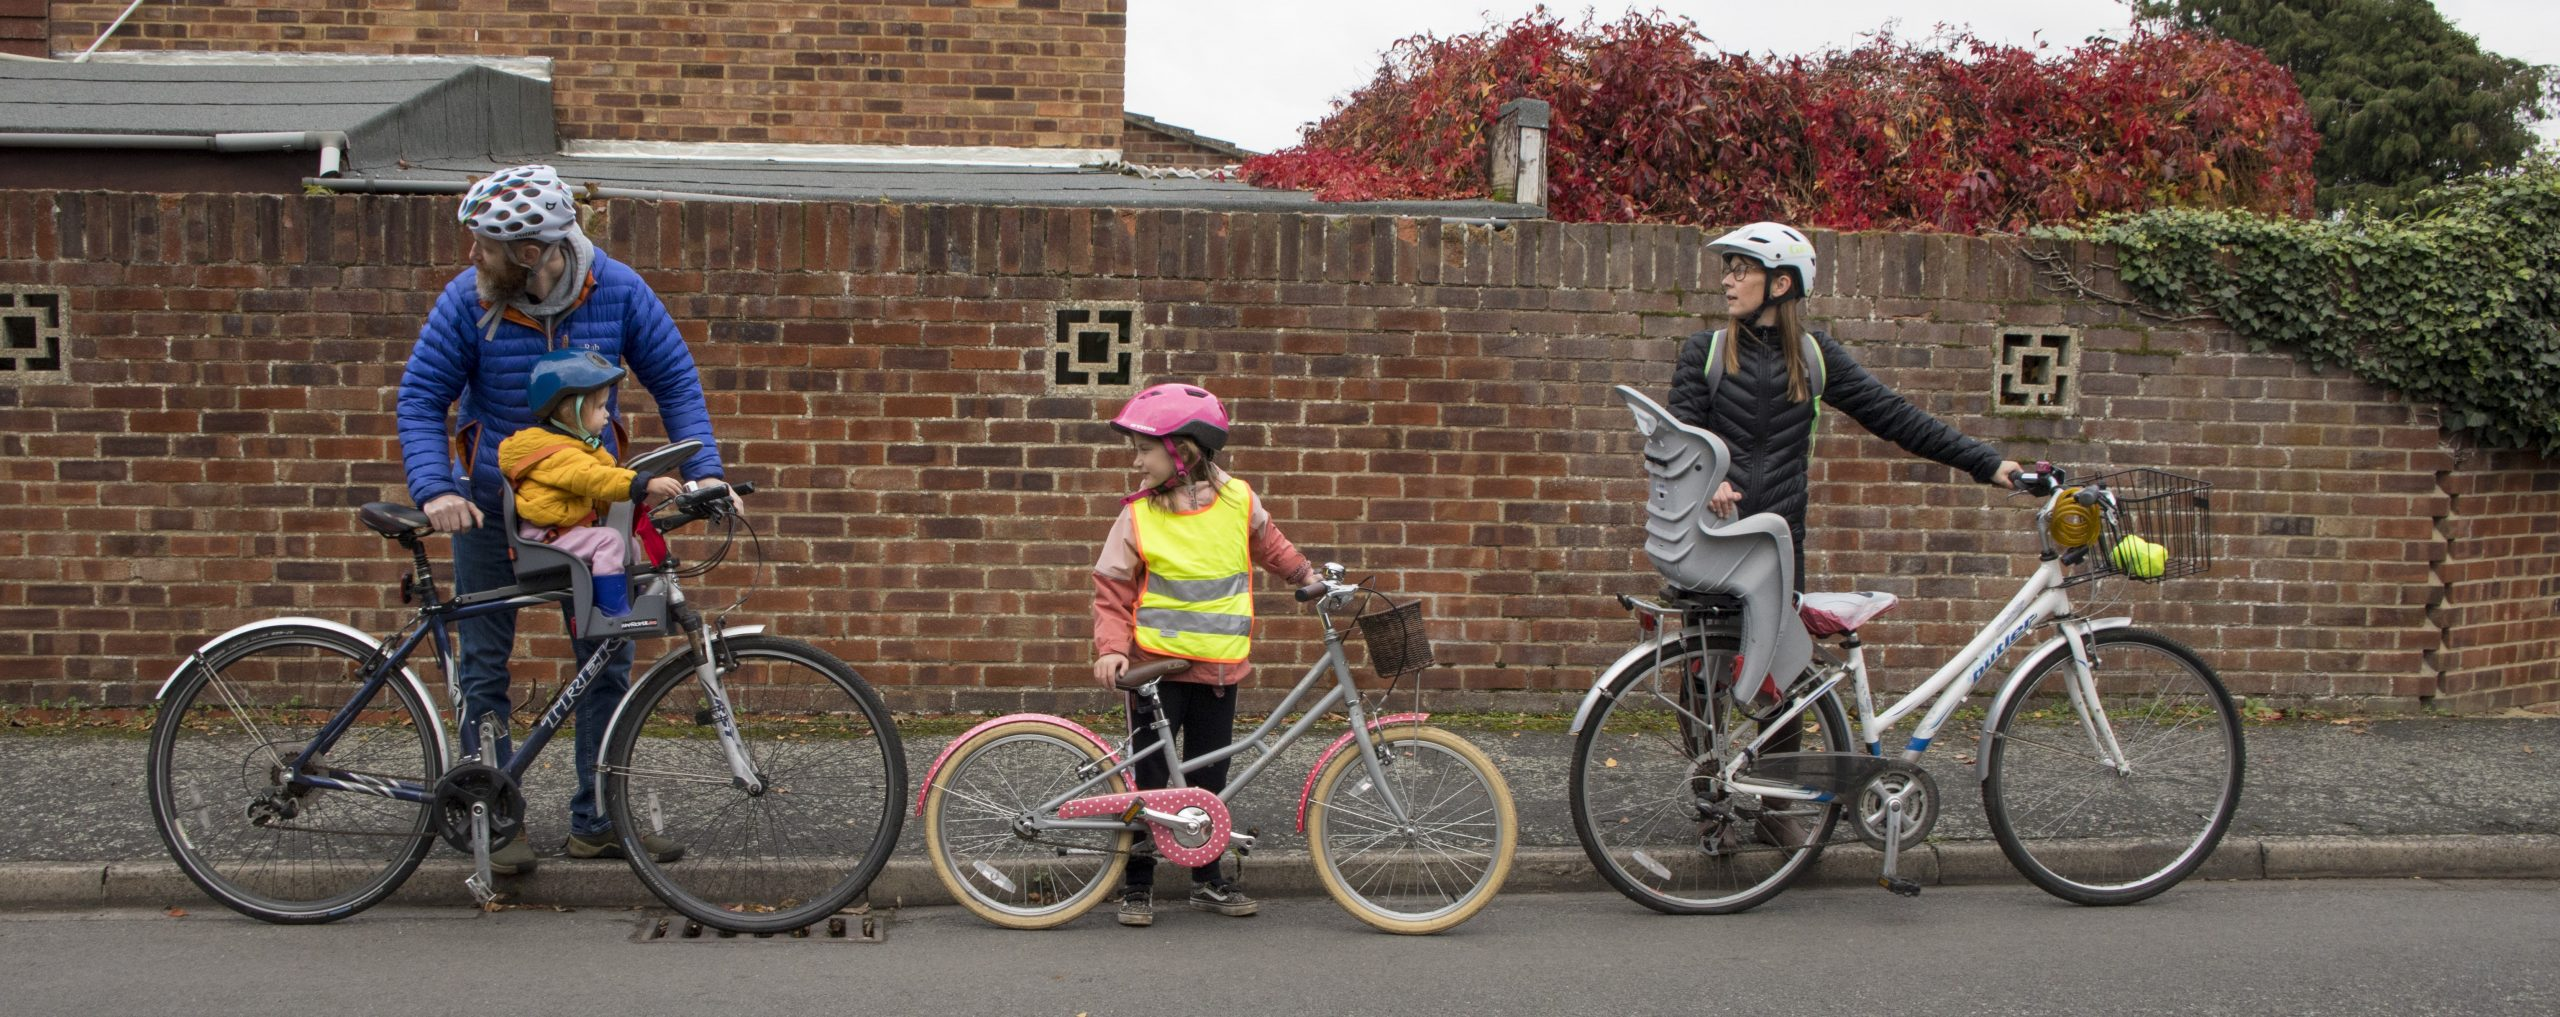 A man, child and woman stood next to their bikes looking behind them. The man has a toddler in a seat on his bike.